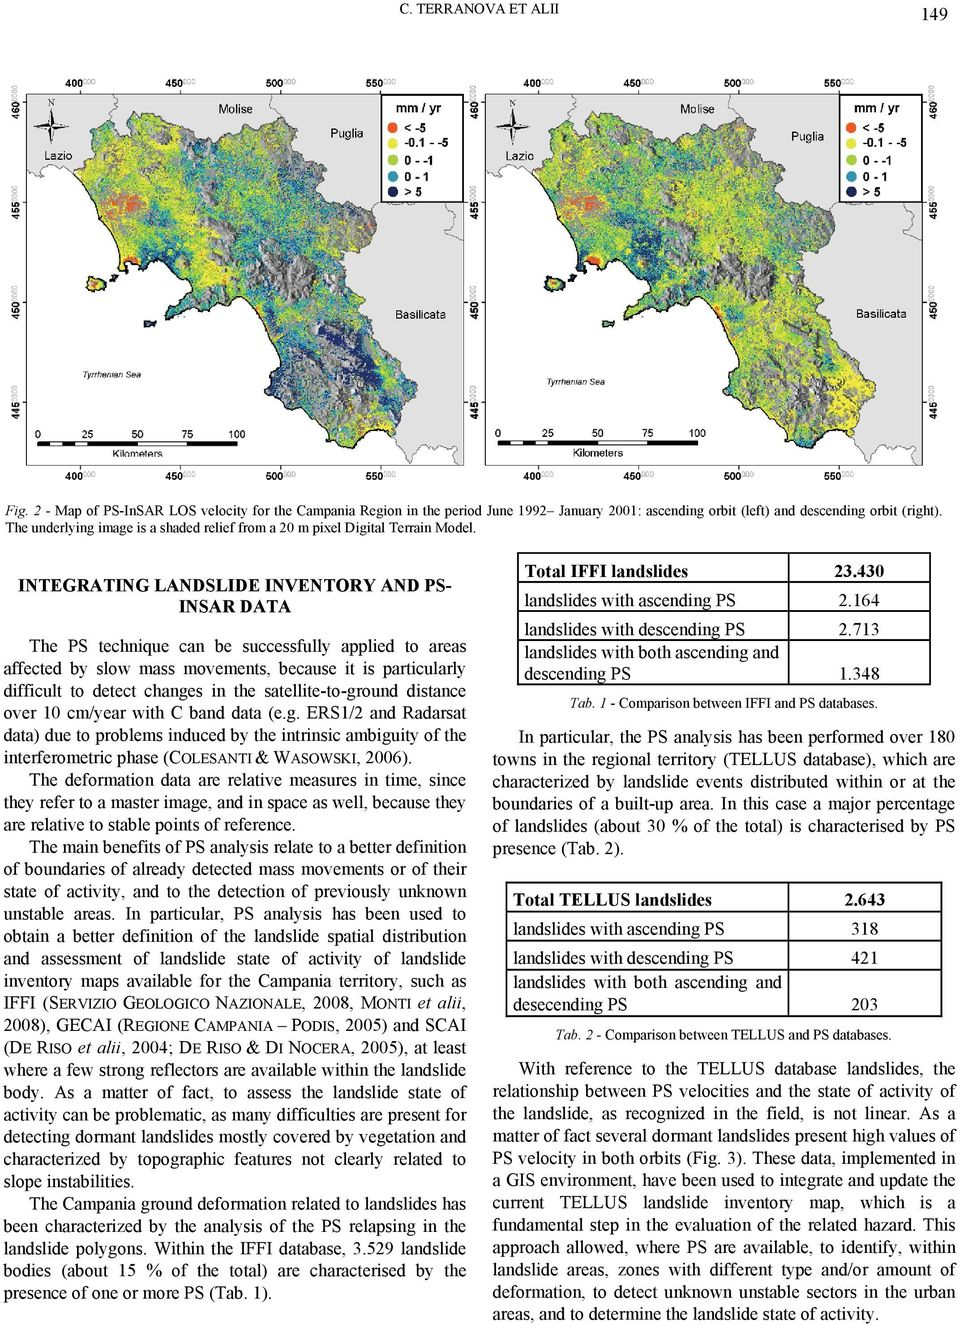 INTEGRATING LANDSLIDE INVENTORY AND PSINSAR DATA The PS technique can be successfully applied to areas affected by slow mass movements, because it is particularly difficult to detect changes in the